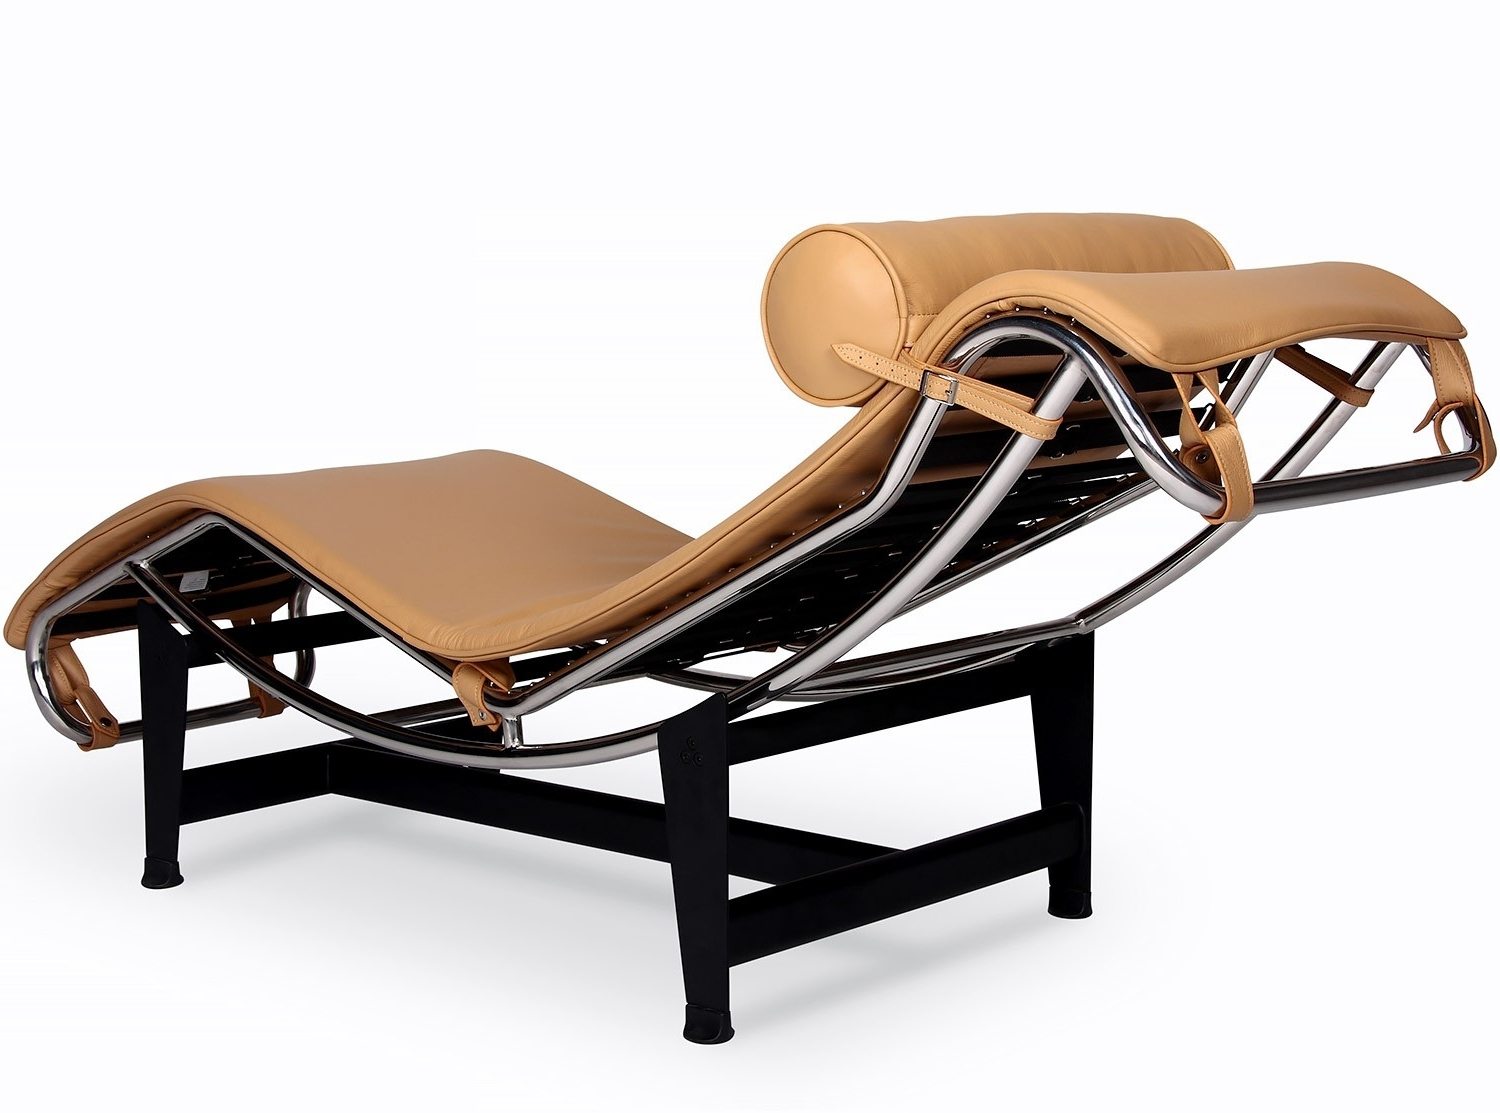 Well Known Lc4 Chaise Lounges Intended For Le Corbusier Lc4 Chaise Longue (Platinum Replica) (View 9 of 15)